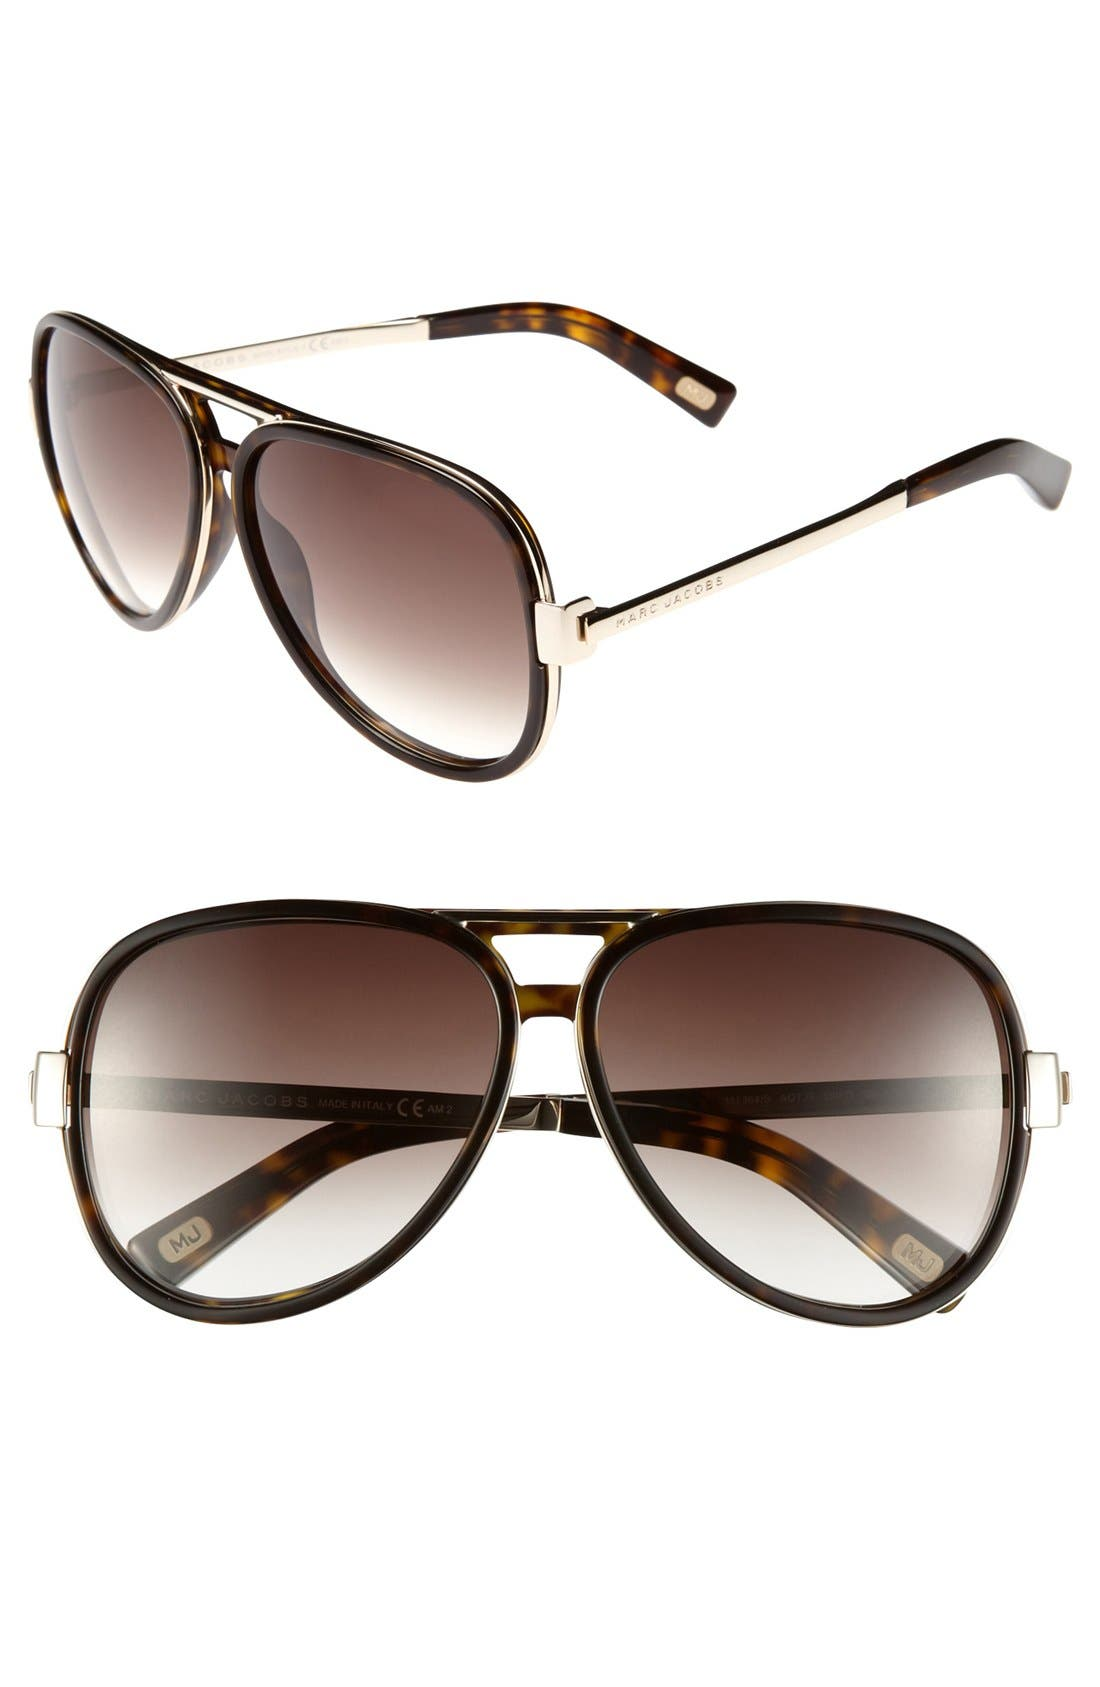 Main Image - MARC JACOBS 59mm Aviator Sunglasses